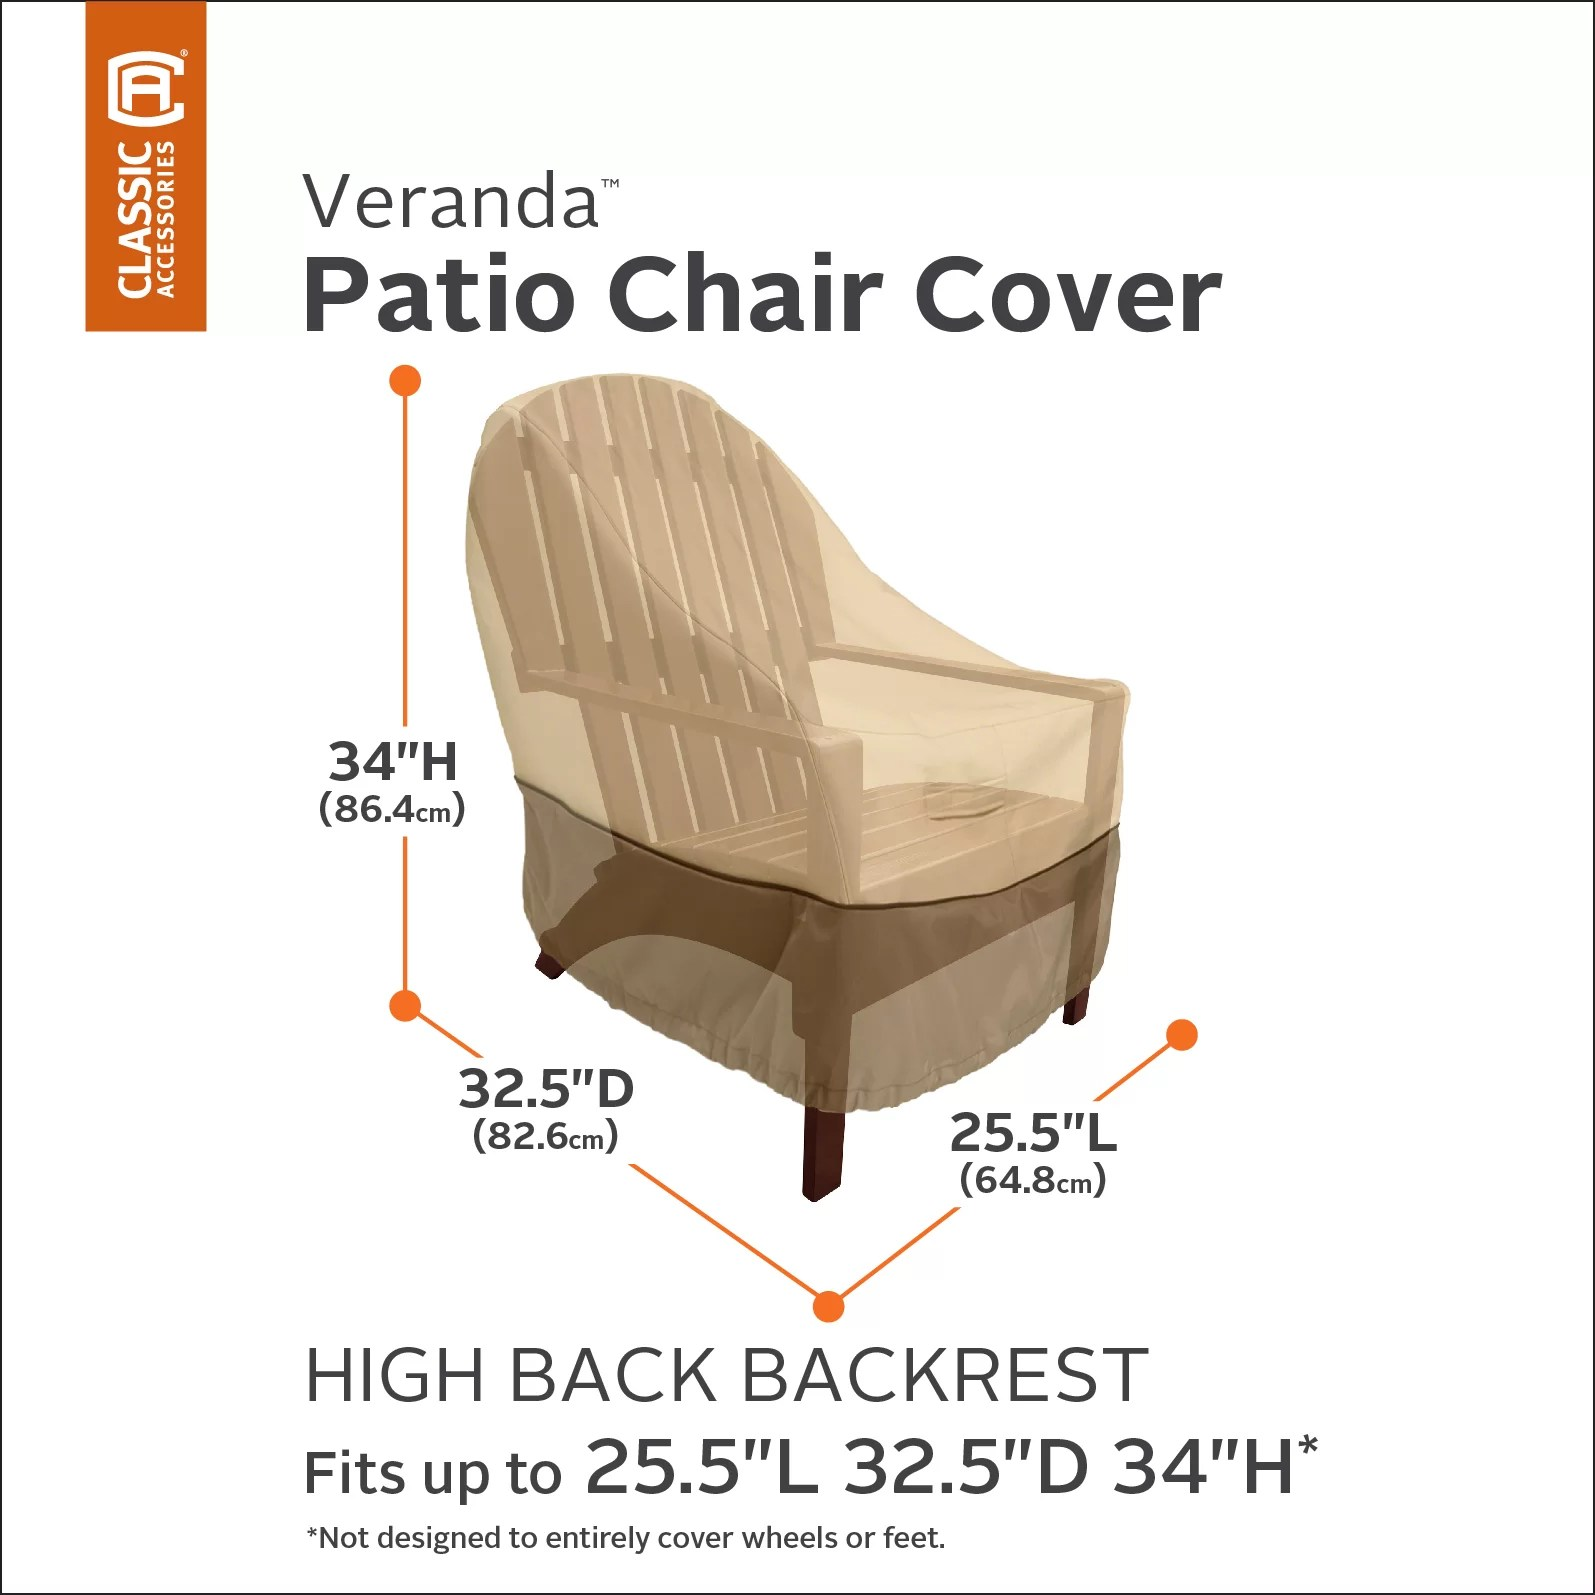 high back chair covers adirondack and ottoman set classic accessories veranda cover